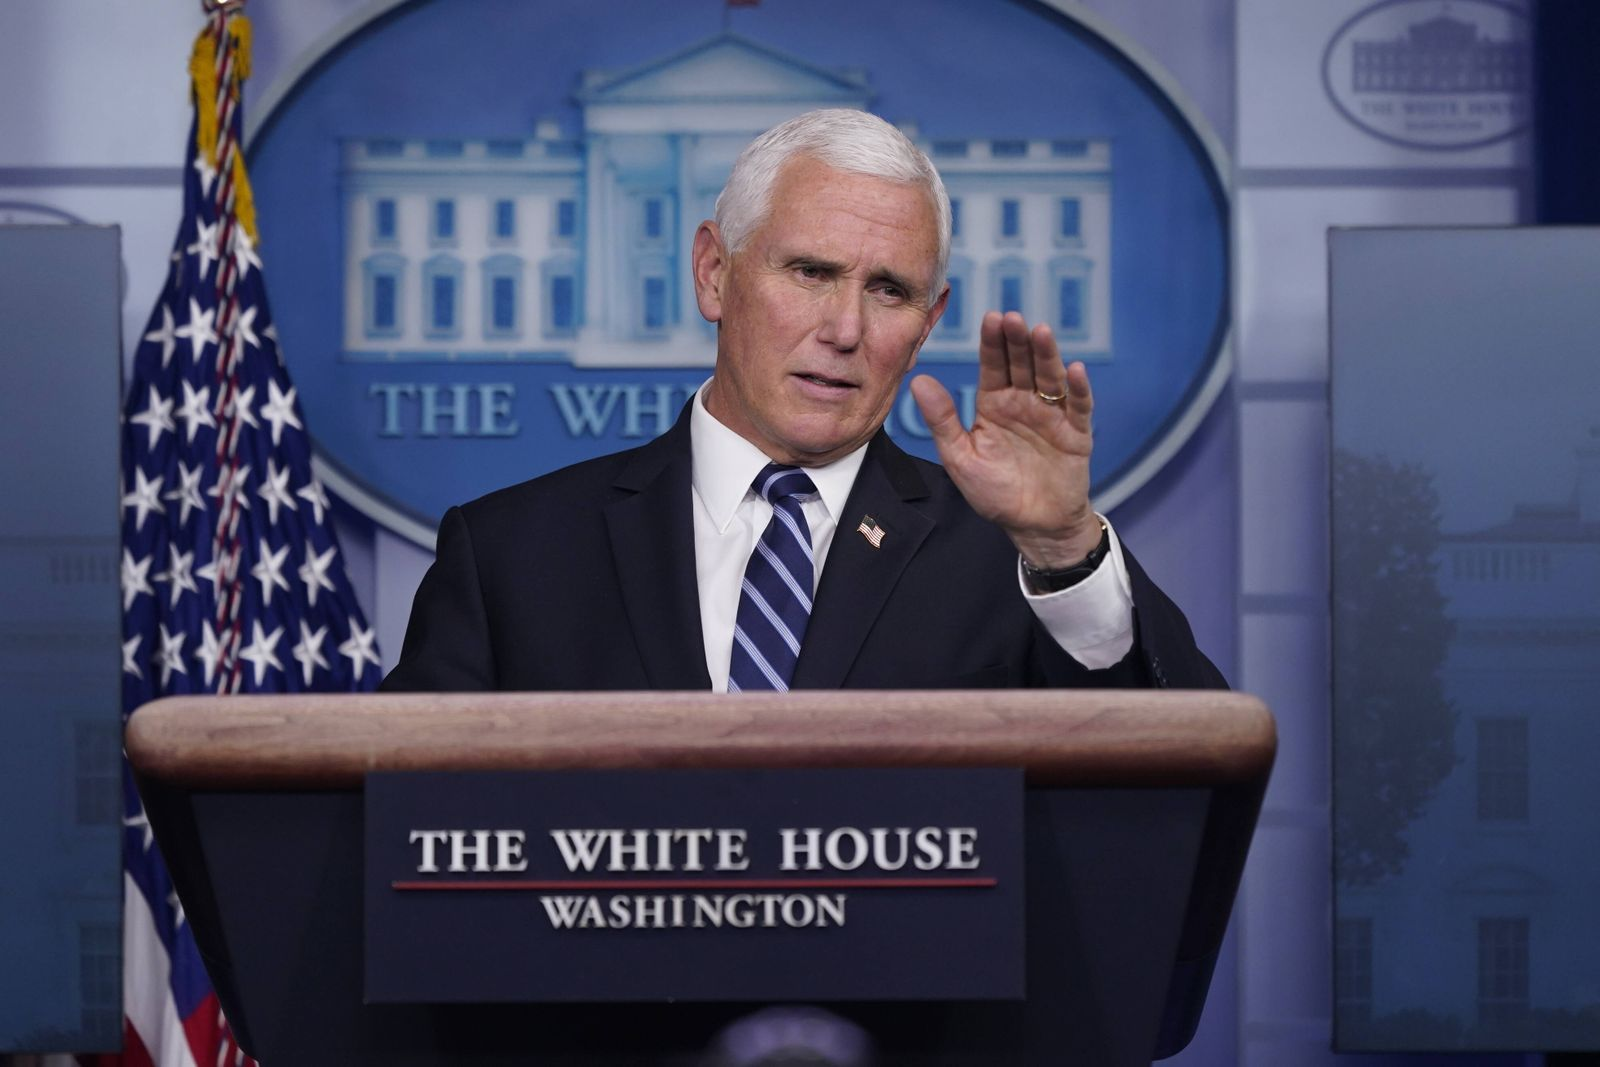 November 19, 2020, Washington, District of Columbia, USA: United States Vice President Mike Pence participates in a bri